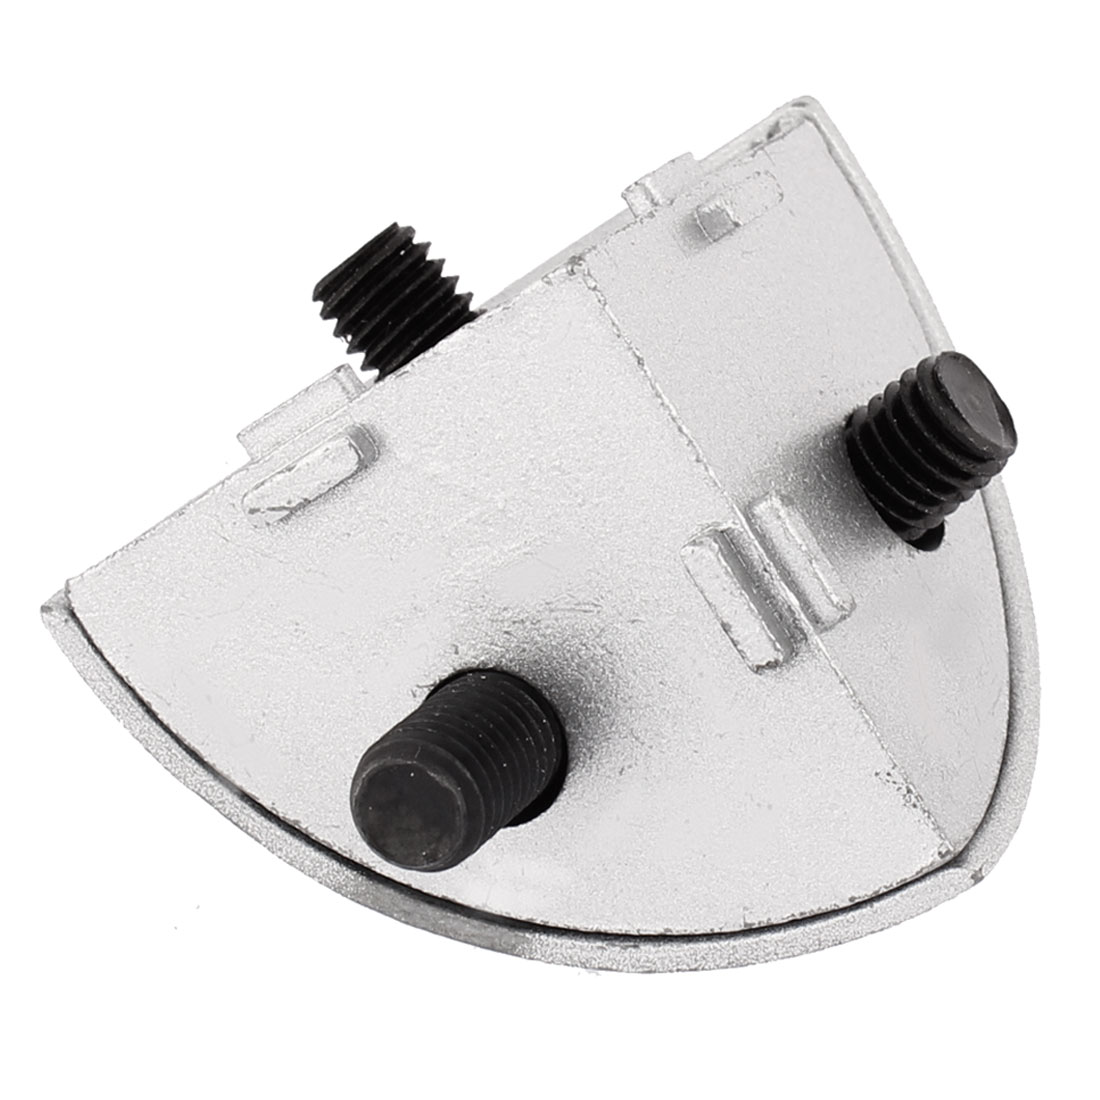 56mm x 40mm 3D Corner Bracket Silver Tone for R Series Profiles Connected